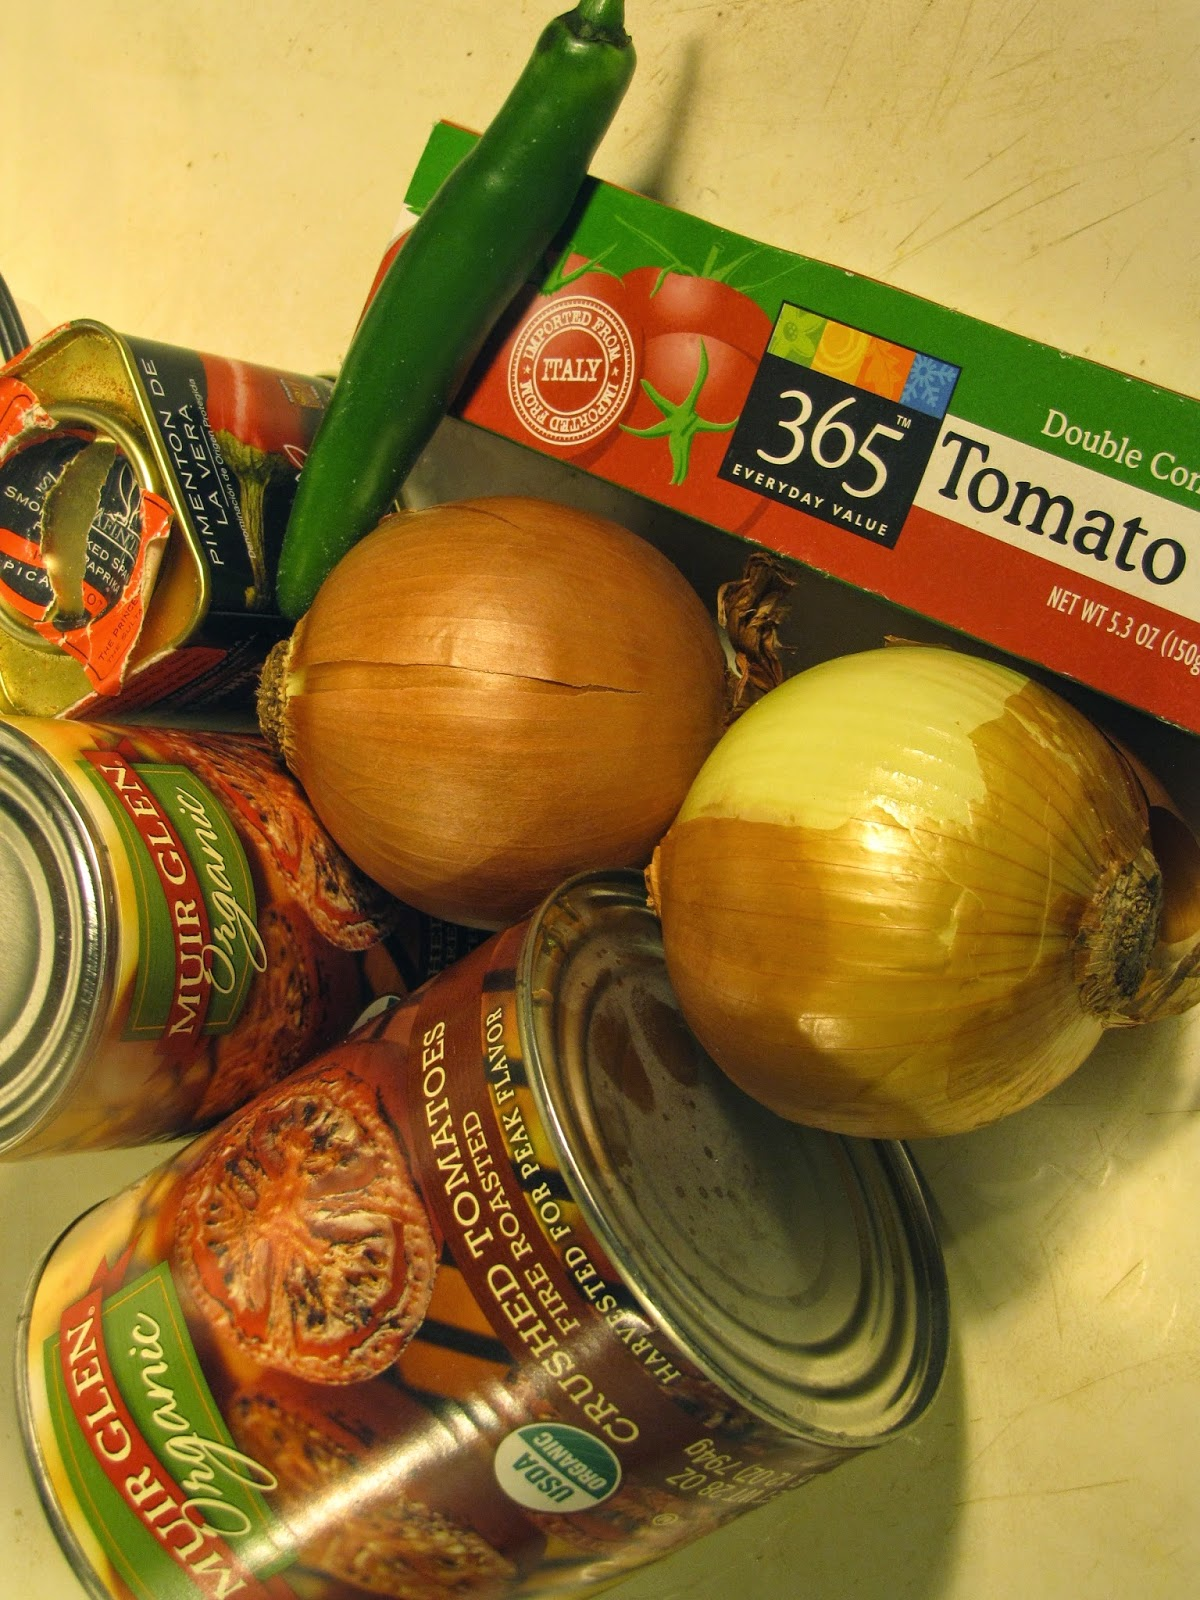 Canned tomatoes, 2 onions, jalapeno and spices for tomato sauce.